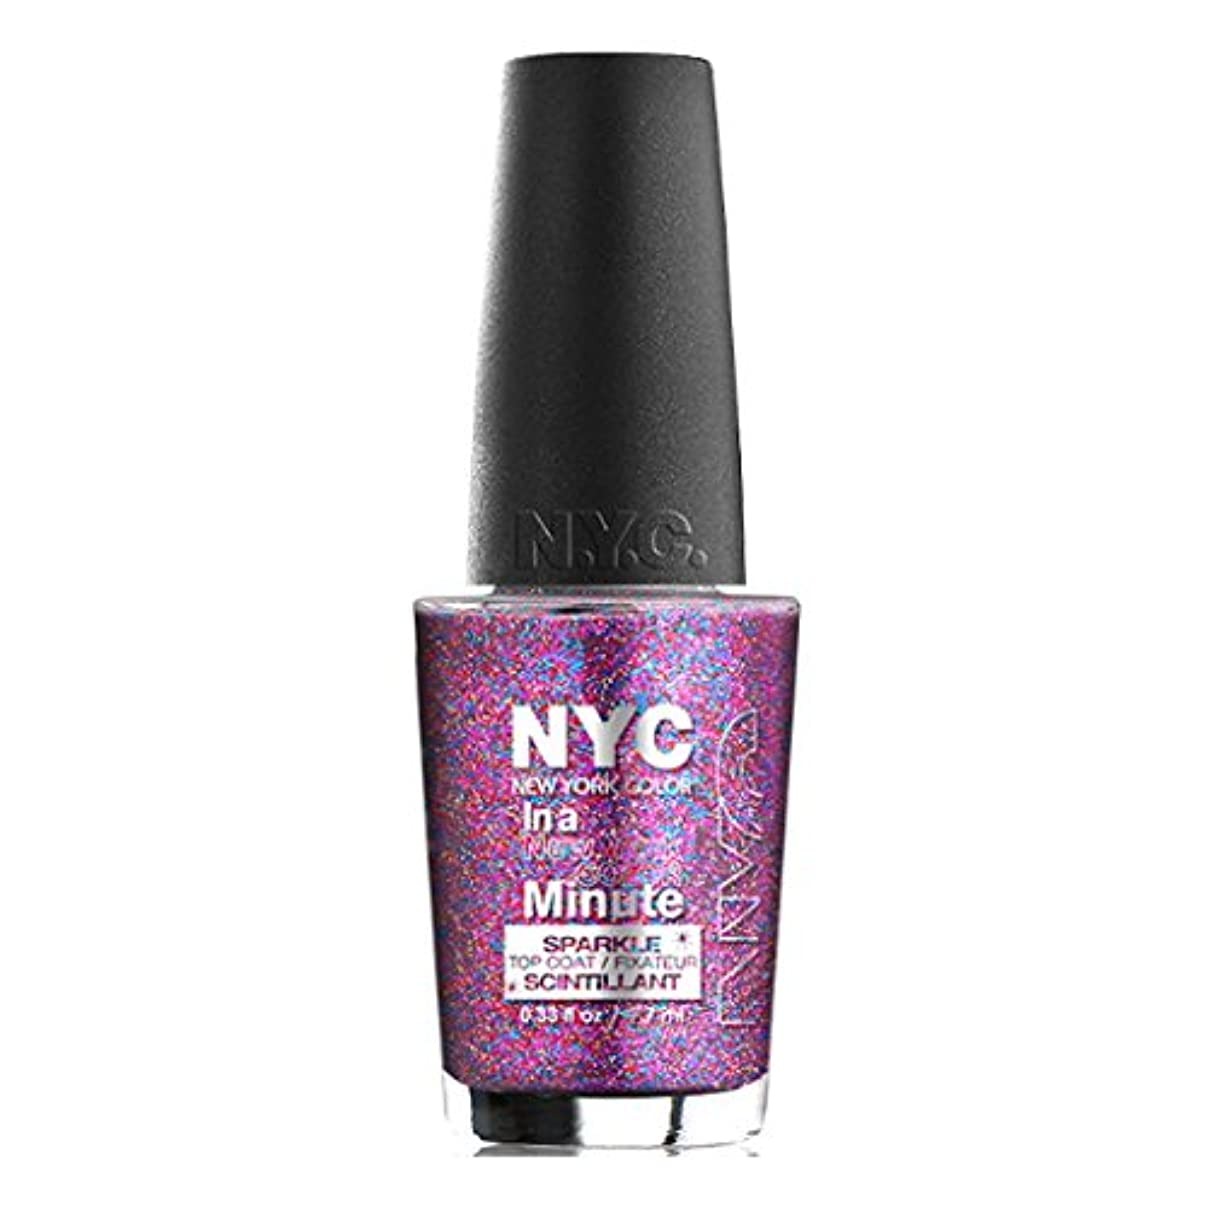 ロケット日世紀(6 Pack) NYC In A New York Color Minute Sparkle Top Coat - Big City Dazzle (並行輸入品)